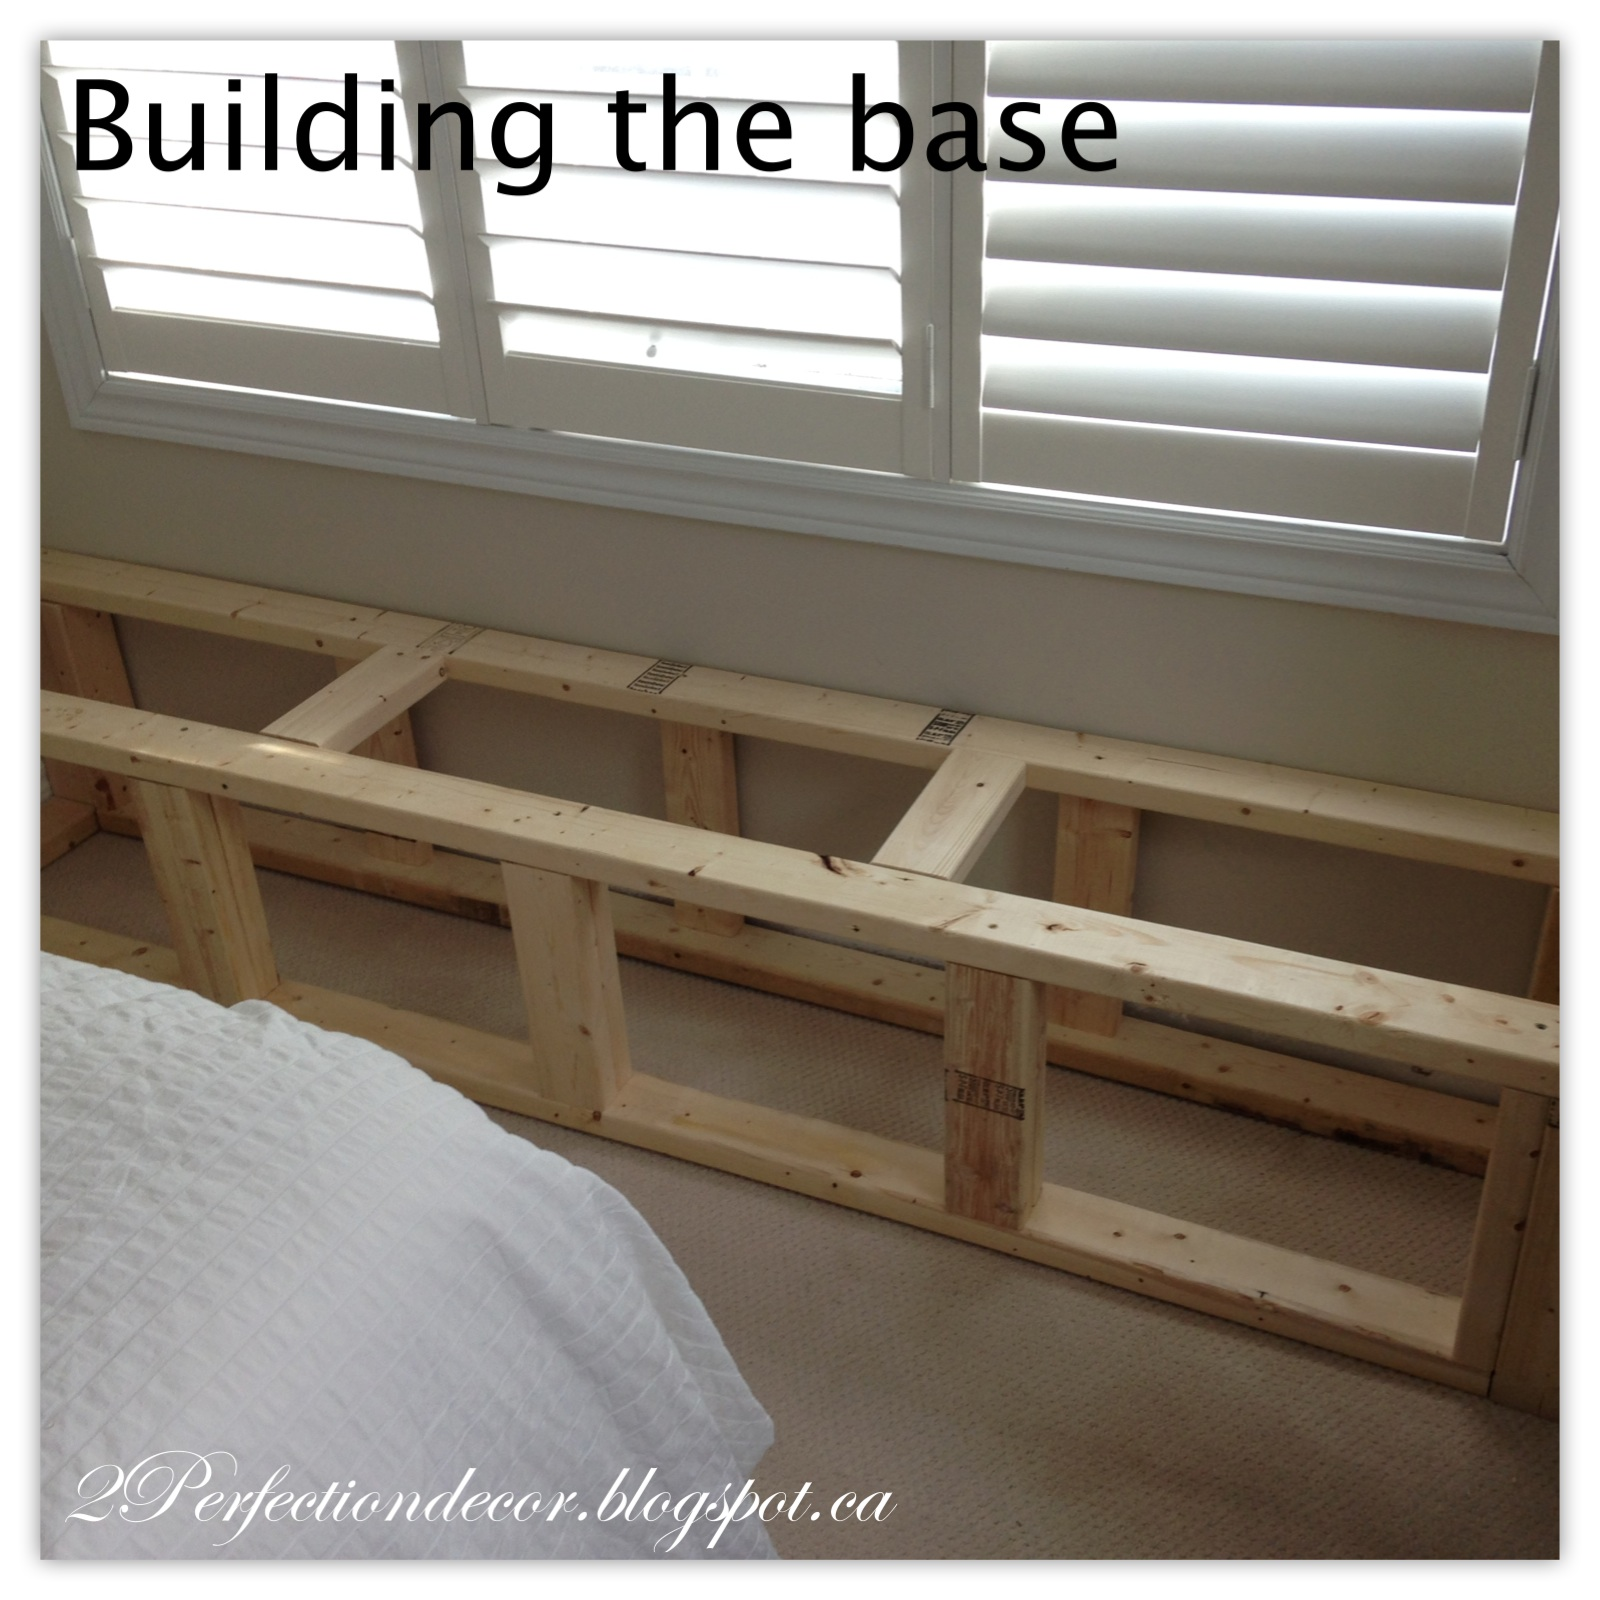 Awe Inspiring 2Perfection Decor Window Seat With Storage Reveal Onthecornerstone Fun Painted Chair Ideas Images Onthecornerstoneorg